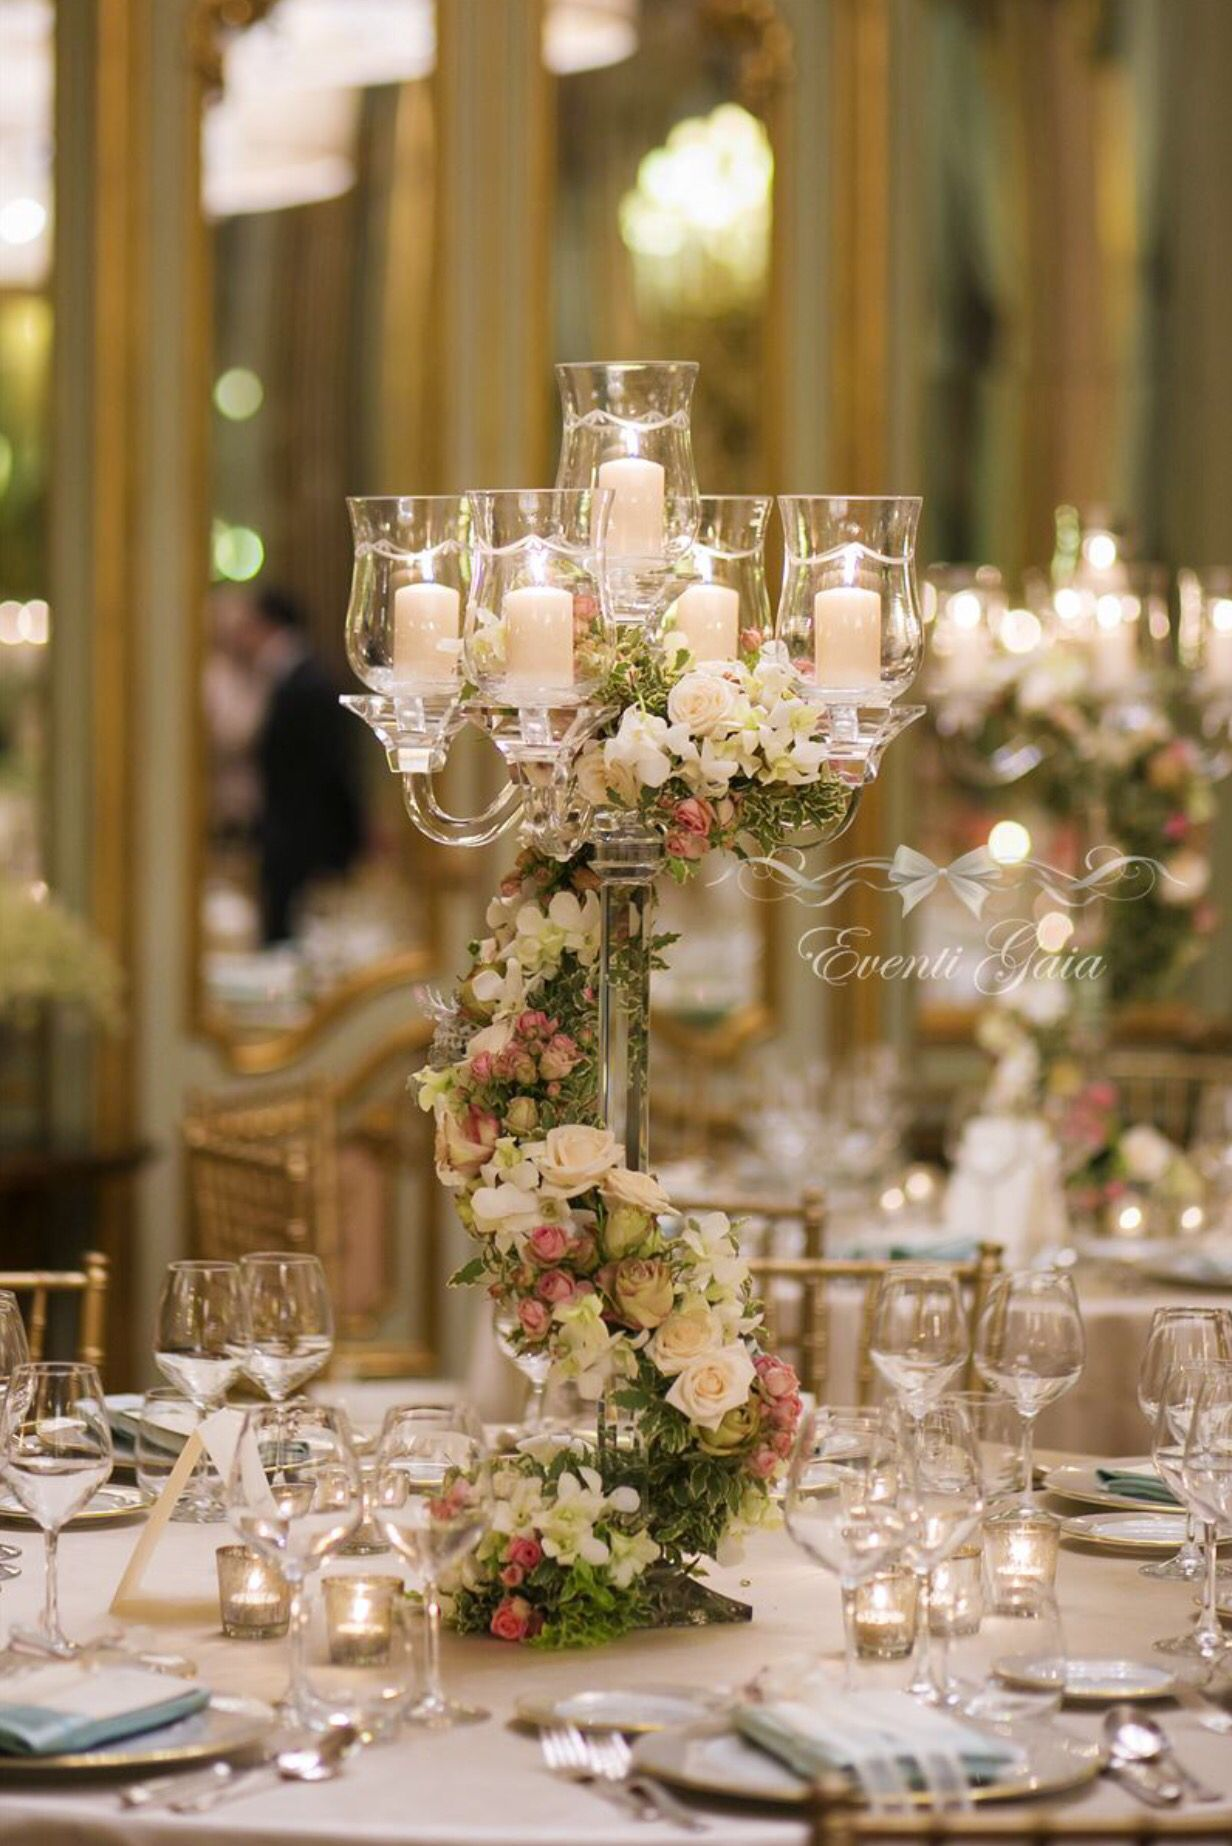 Wonderful Crystal Candelabra Centerpiece Flowers Torchon Pink Champagne Green Wedding